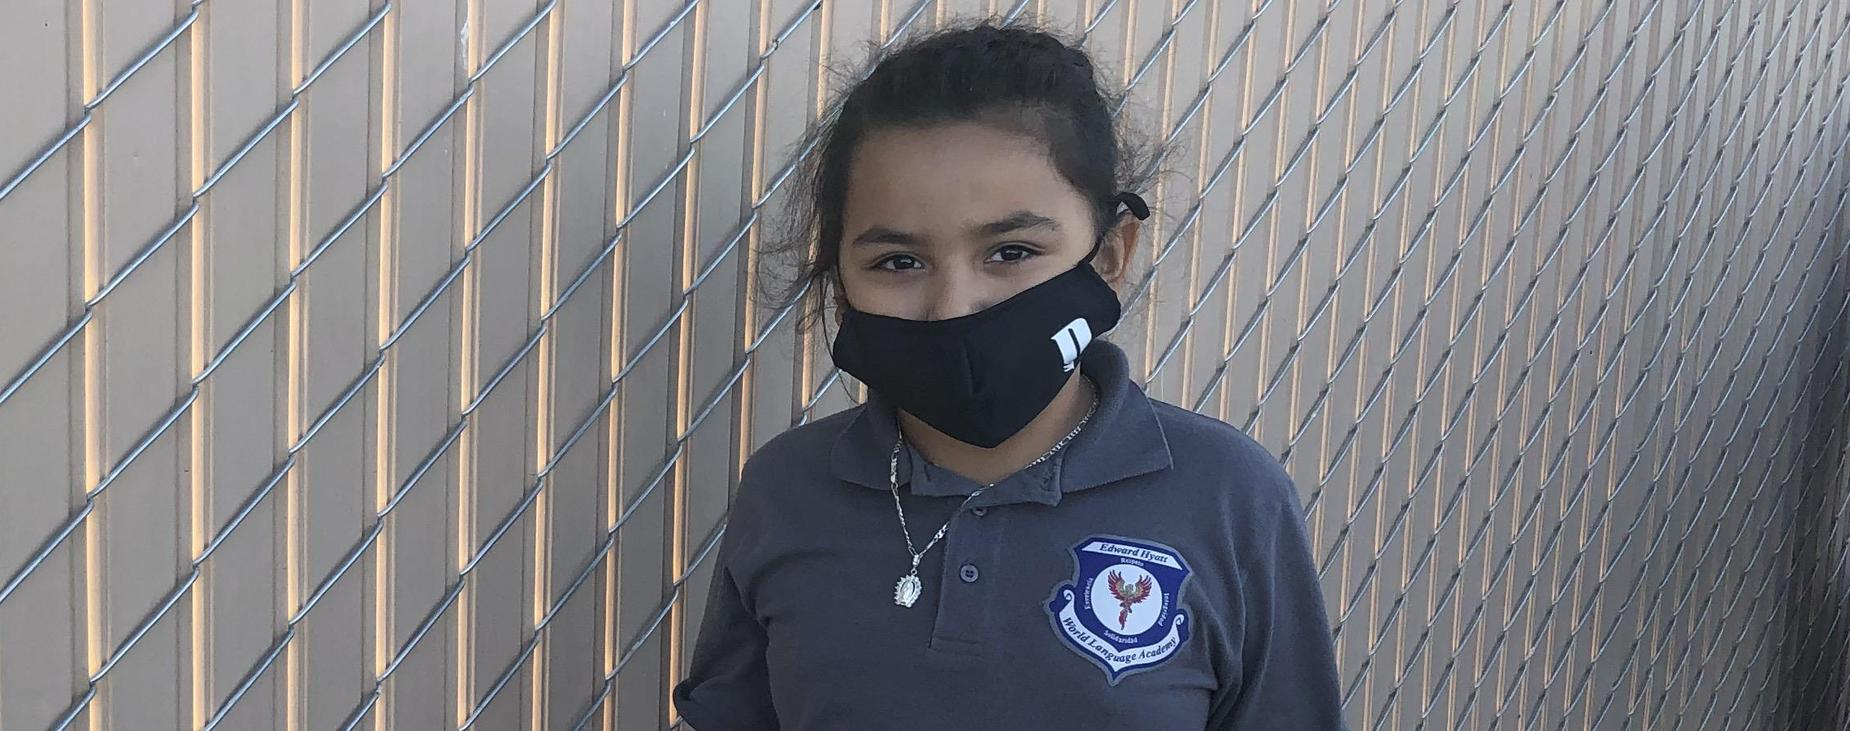 student with mask on in uniform polo